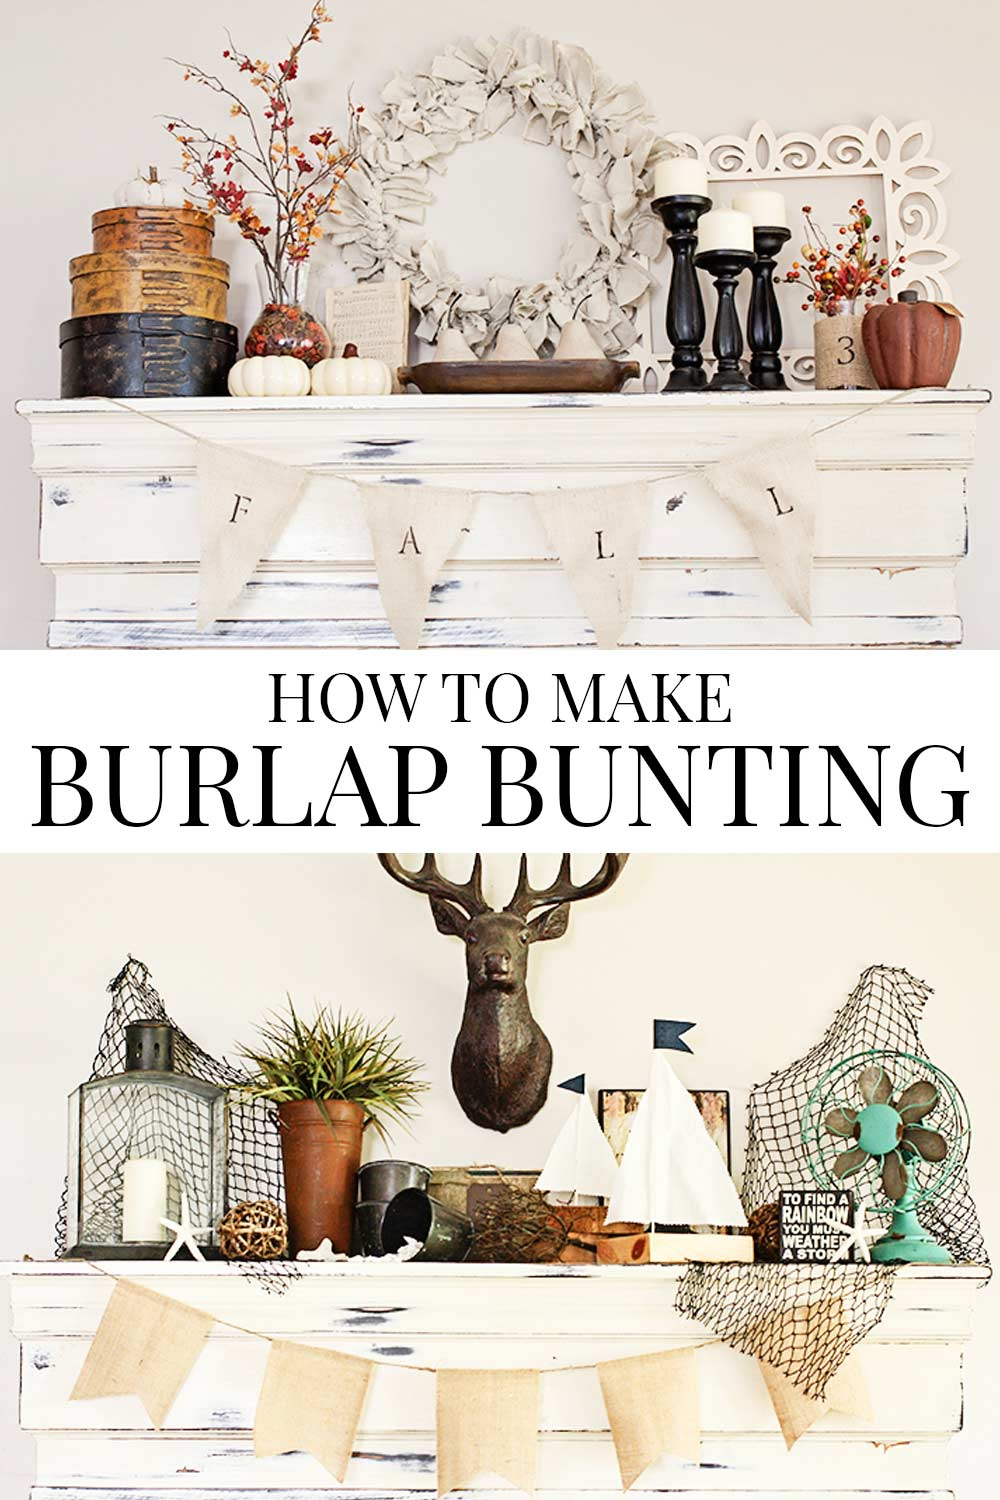 burlap bunting banners on faux mantel with decor